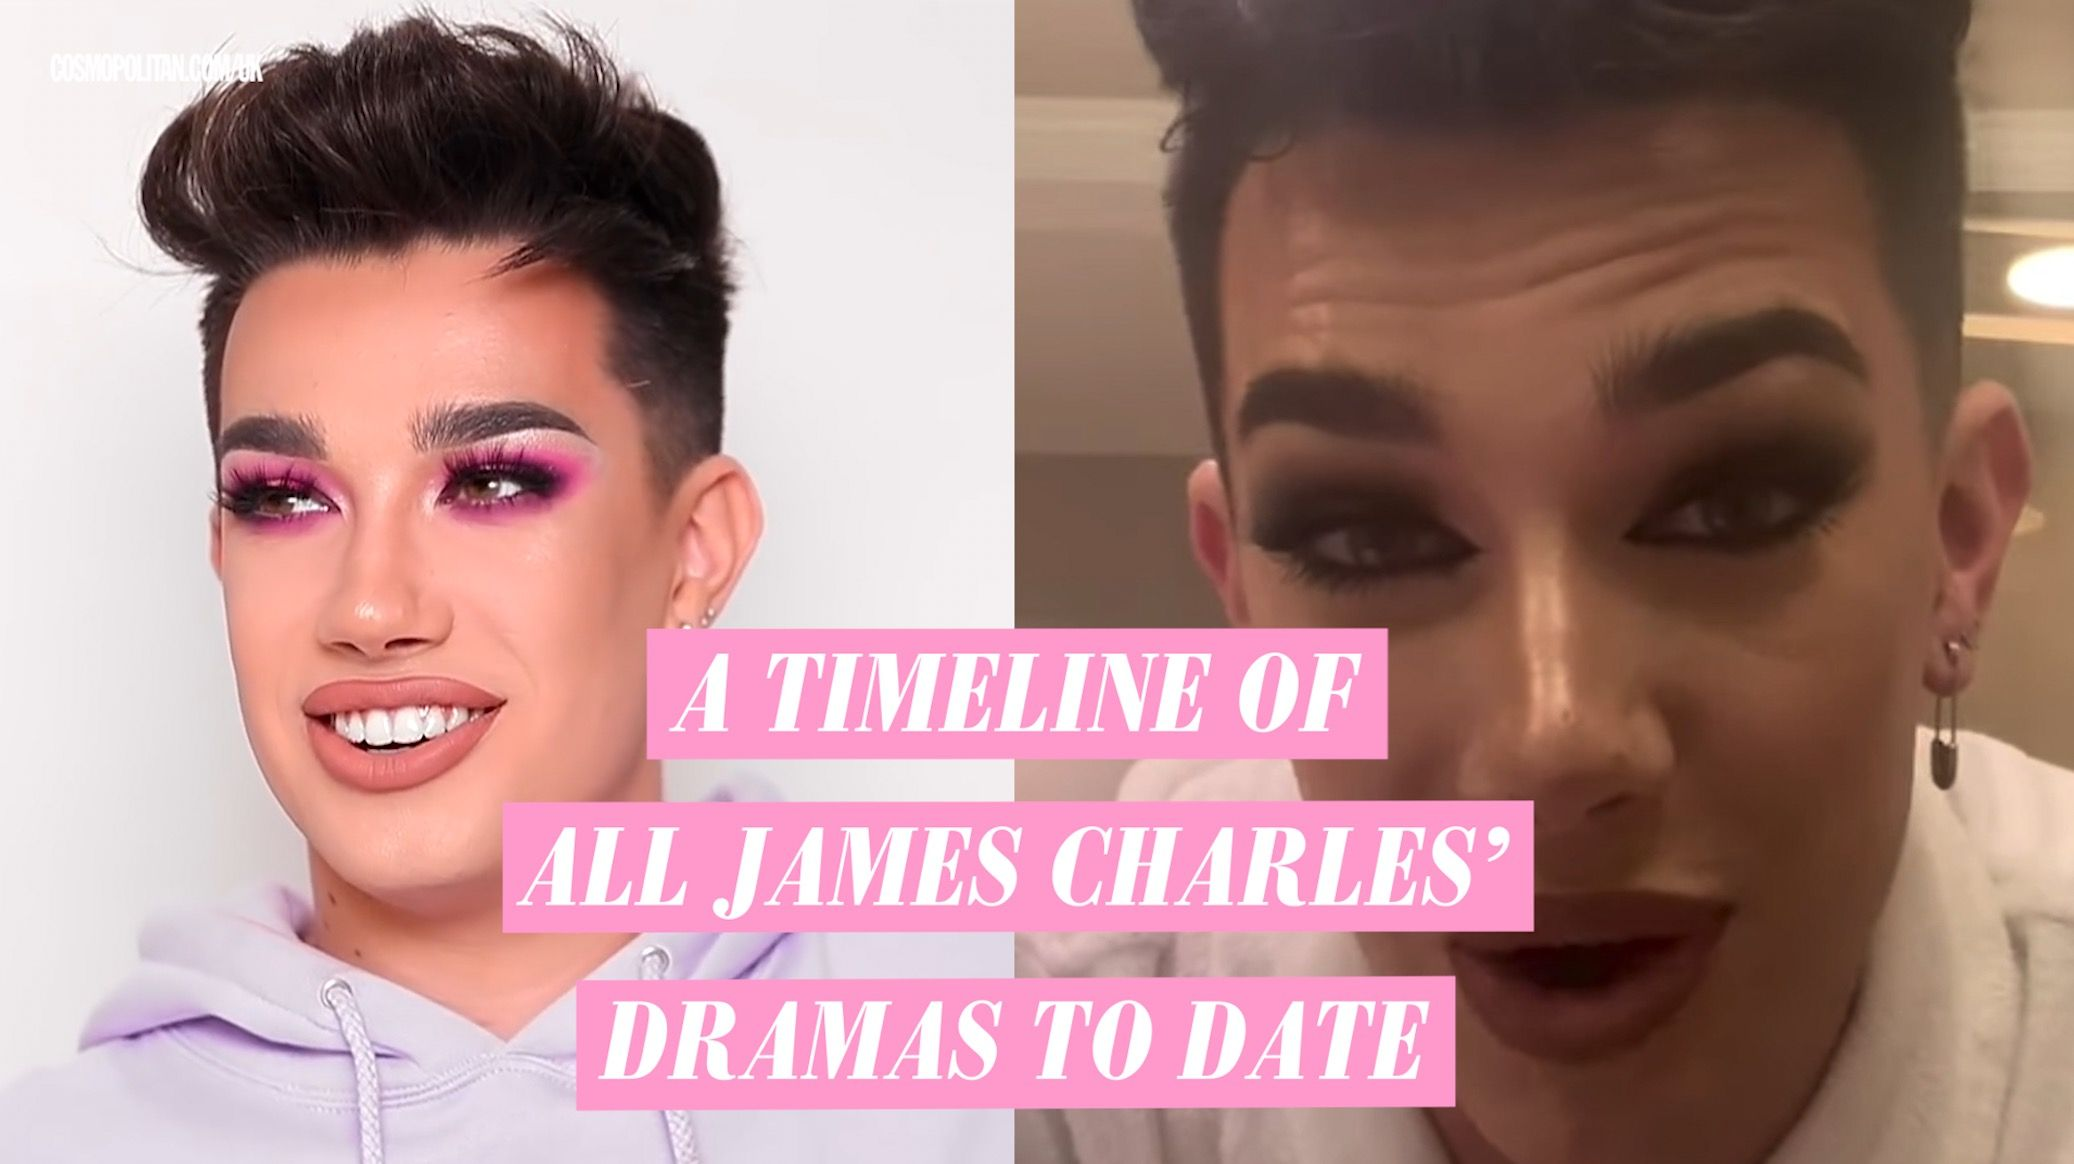 James Charles just posted a video responding to ALL the drama and accusations